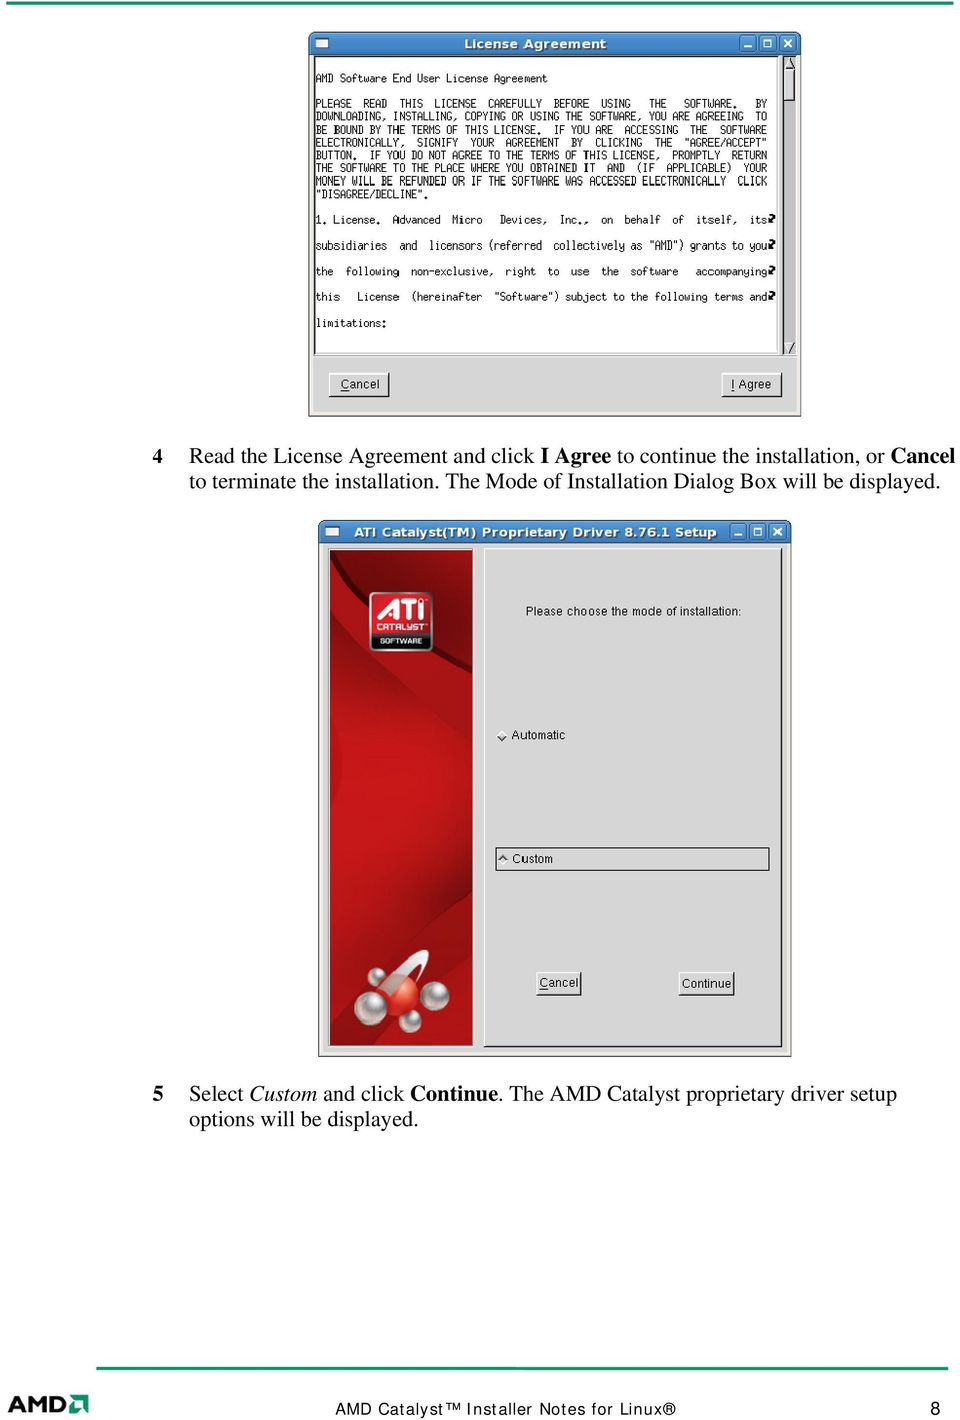 AMD Catalyst Installer Notes for Linux - PDF